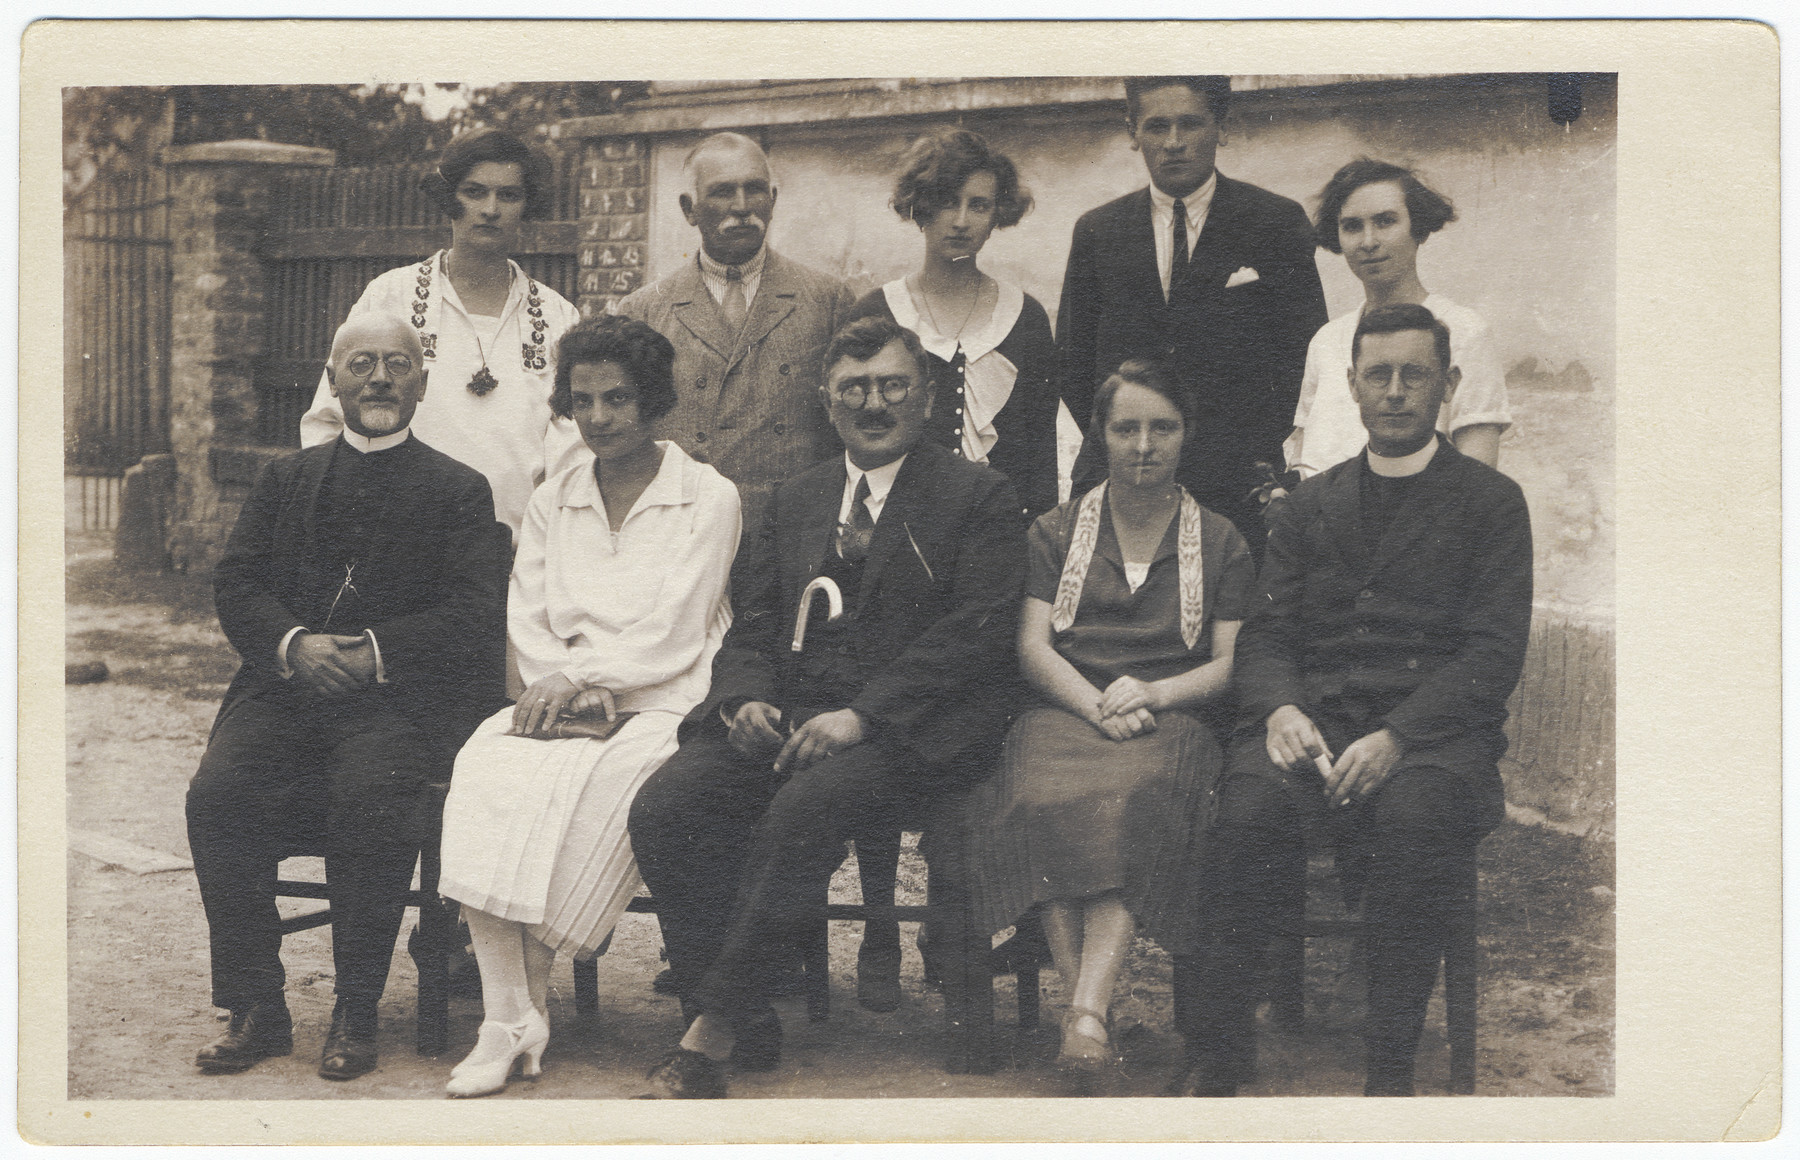 Teachers in a school in Ludbreg.  Pictured seated on the left is Rabbi Leopold Deutsch and seated on the right is a priest.  Both taught classes on religion.  Seated in the center is Miskulin, the music teacher.